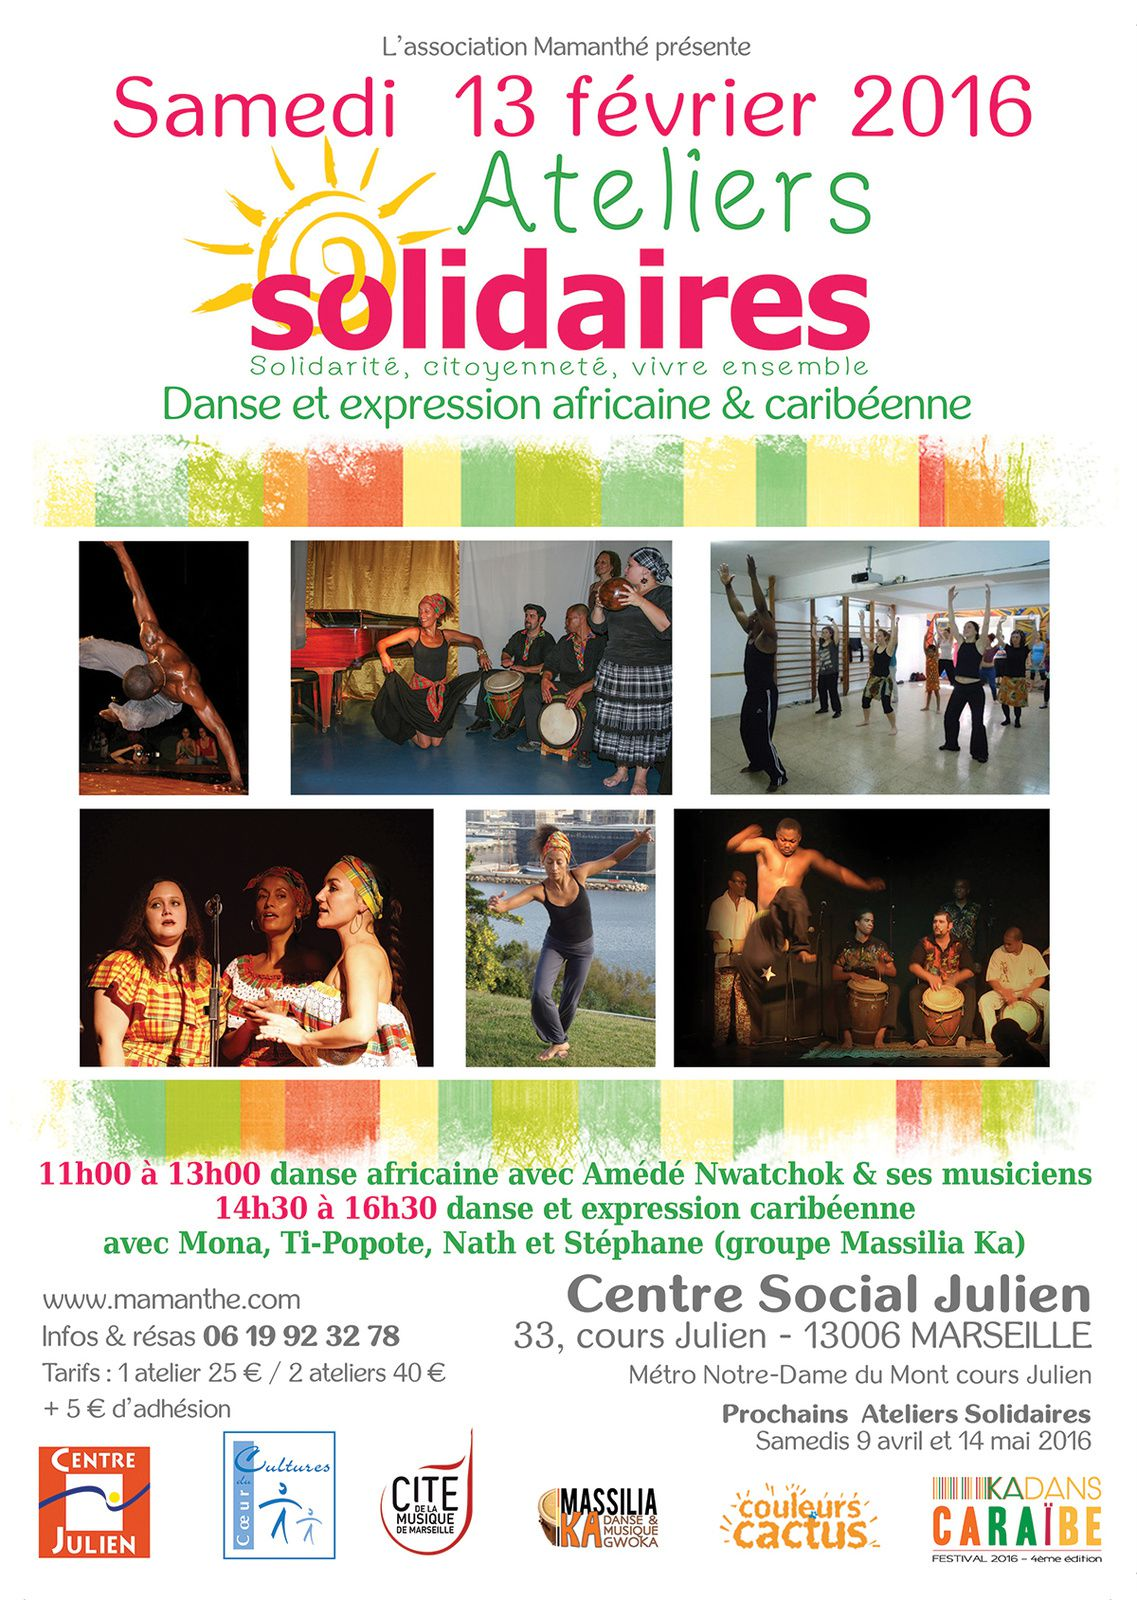 13/02/16 - Ateliers Solidaires - Marseille